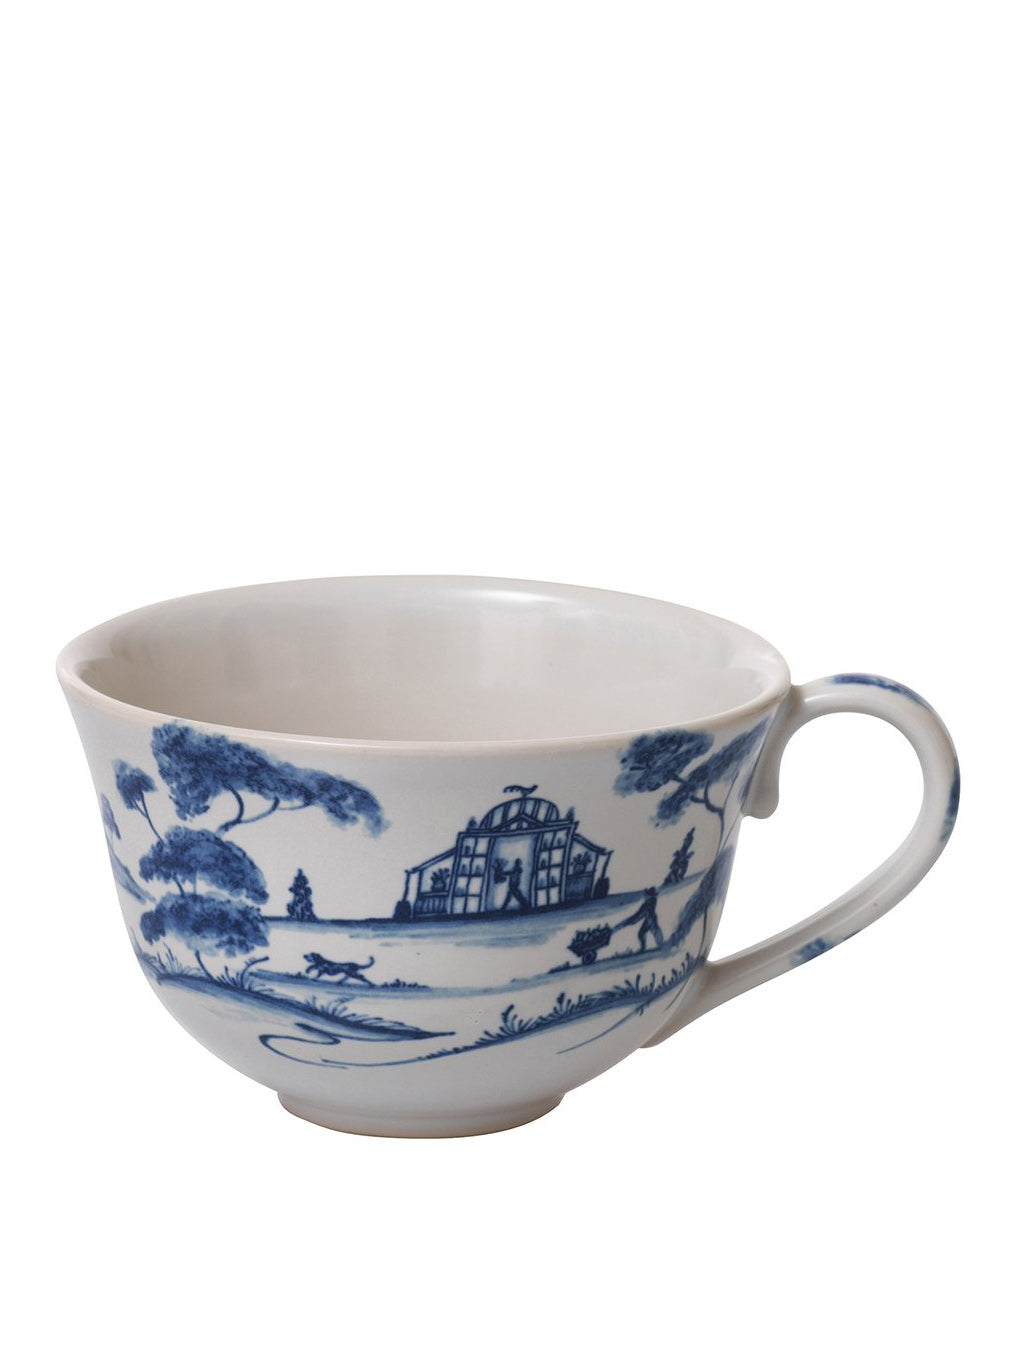 Country Estate Delft Blue Tea/Coffee Cup Garden Follies